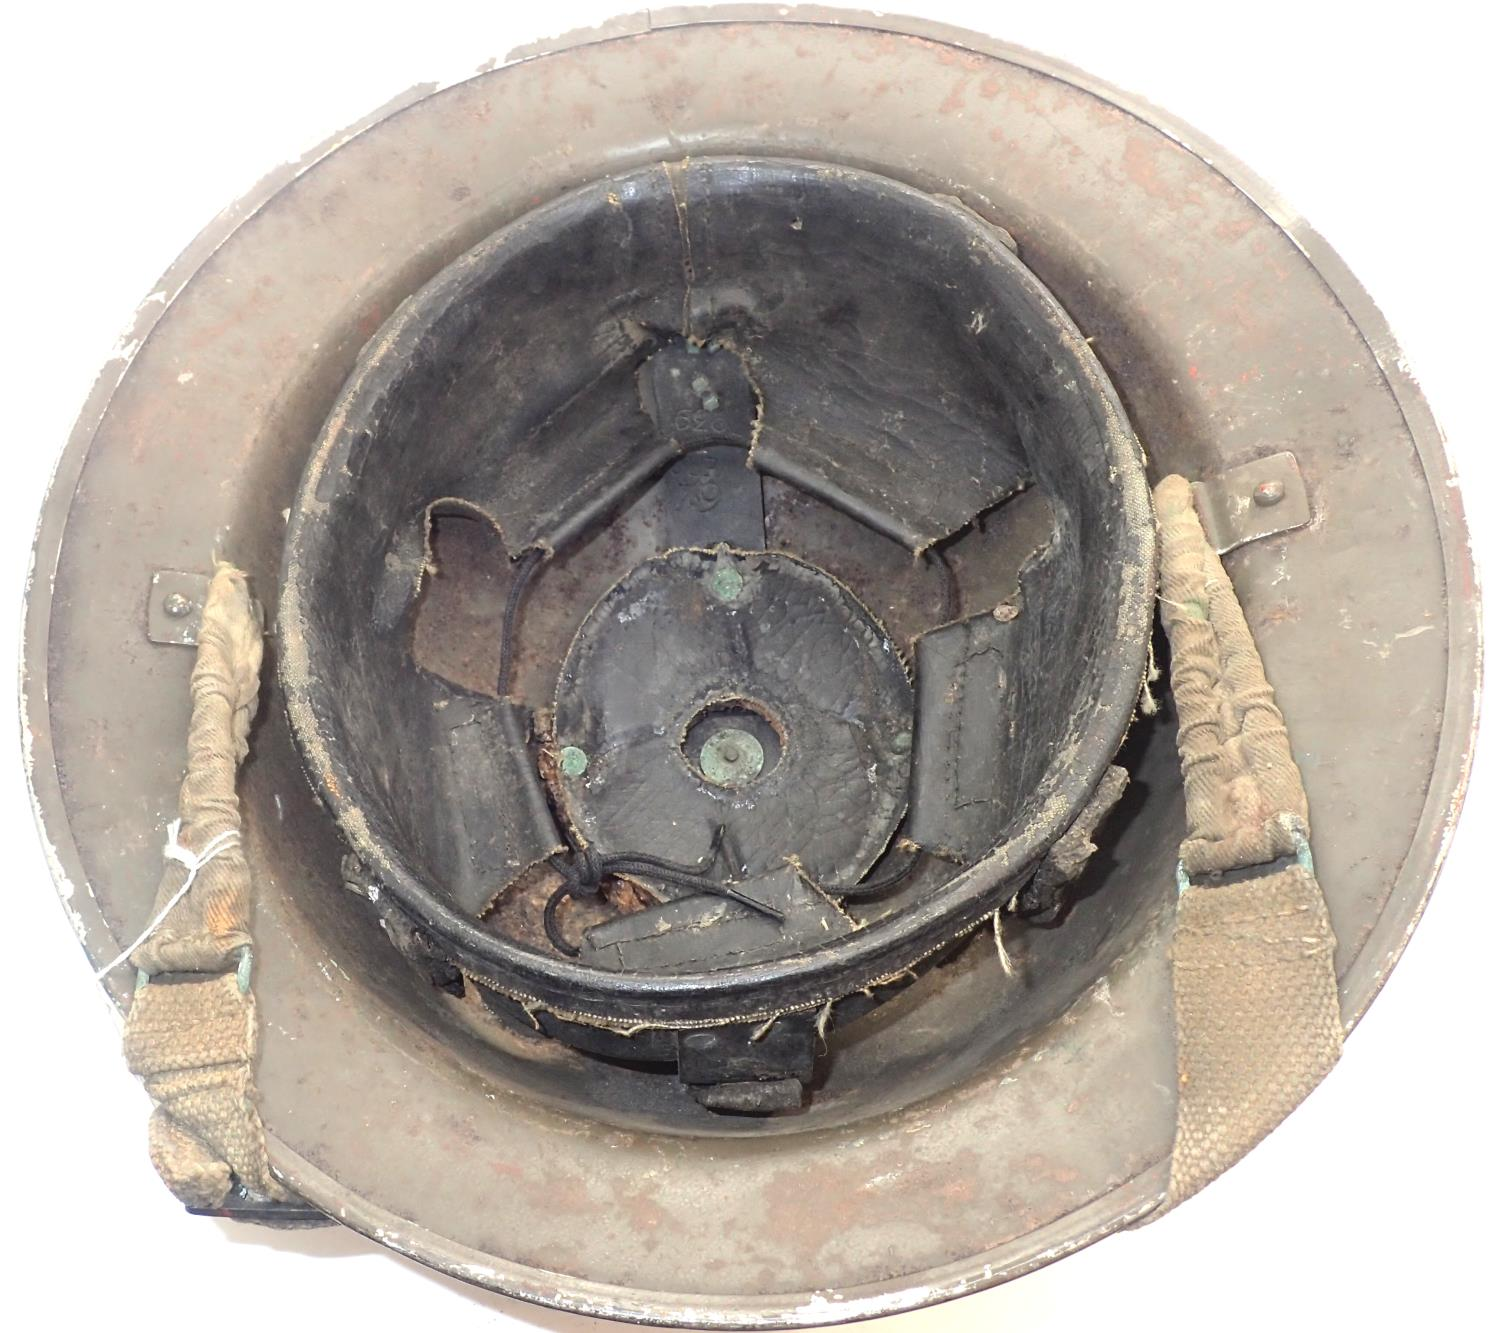 WWII Home Front fire service helmet dated 1939 with leather liner and canvas chinstrap. P&P Group - Image 2 of 2